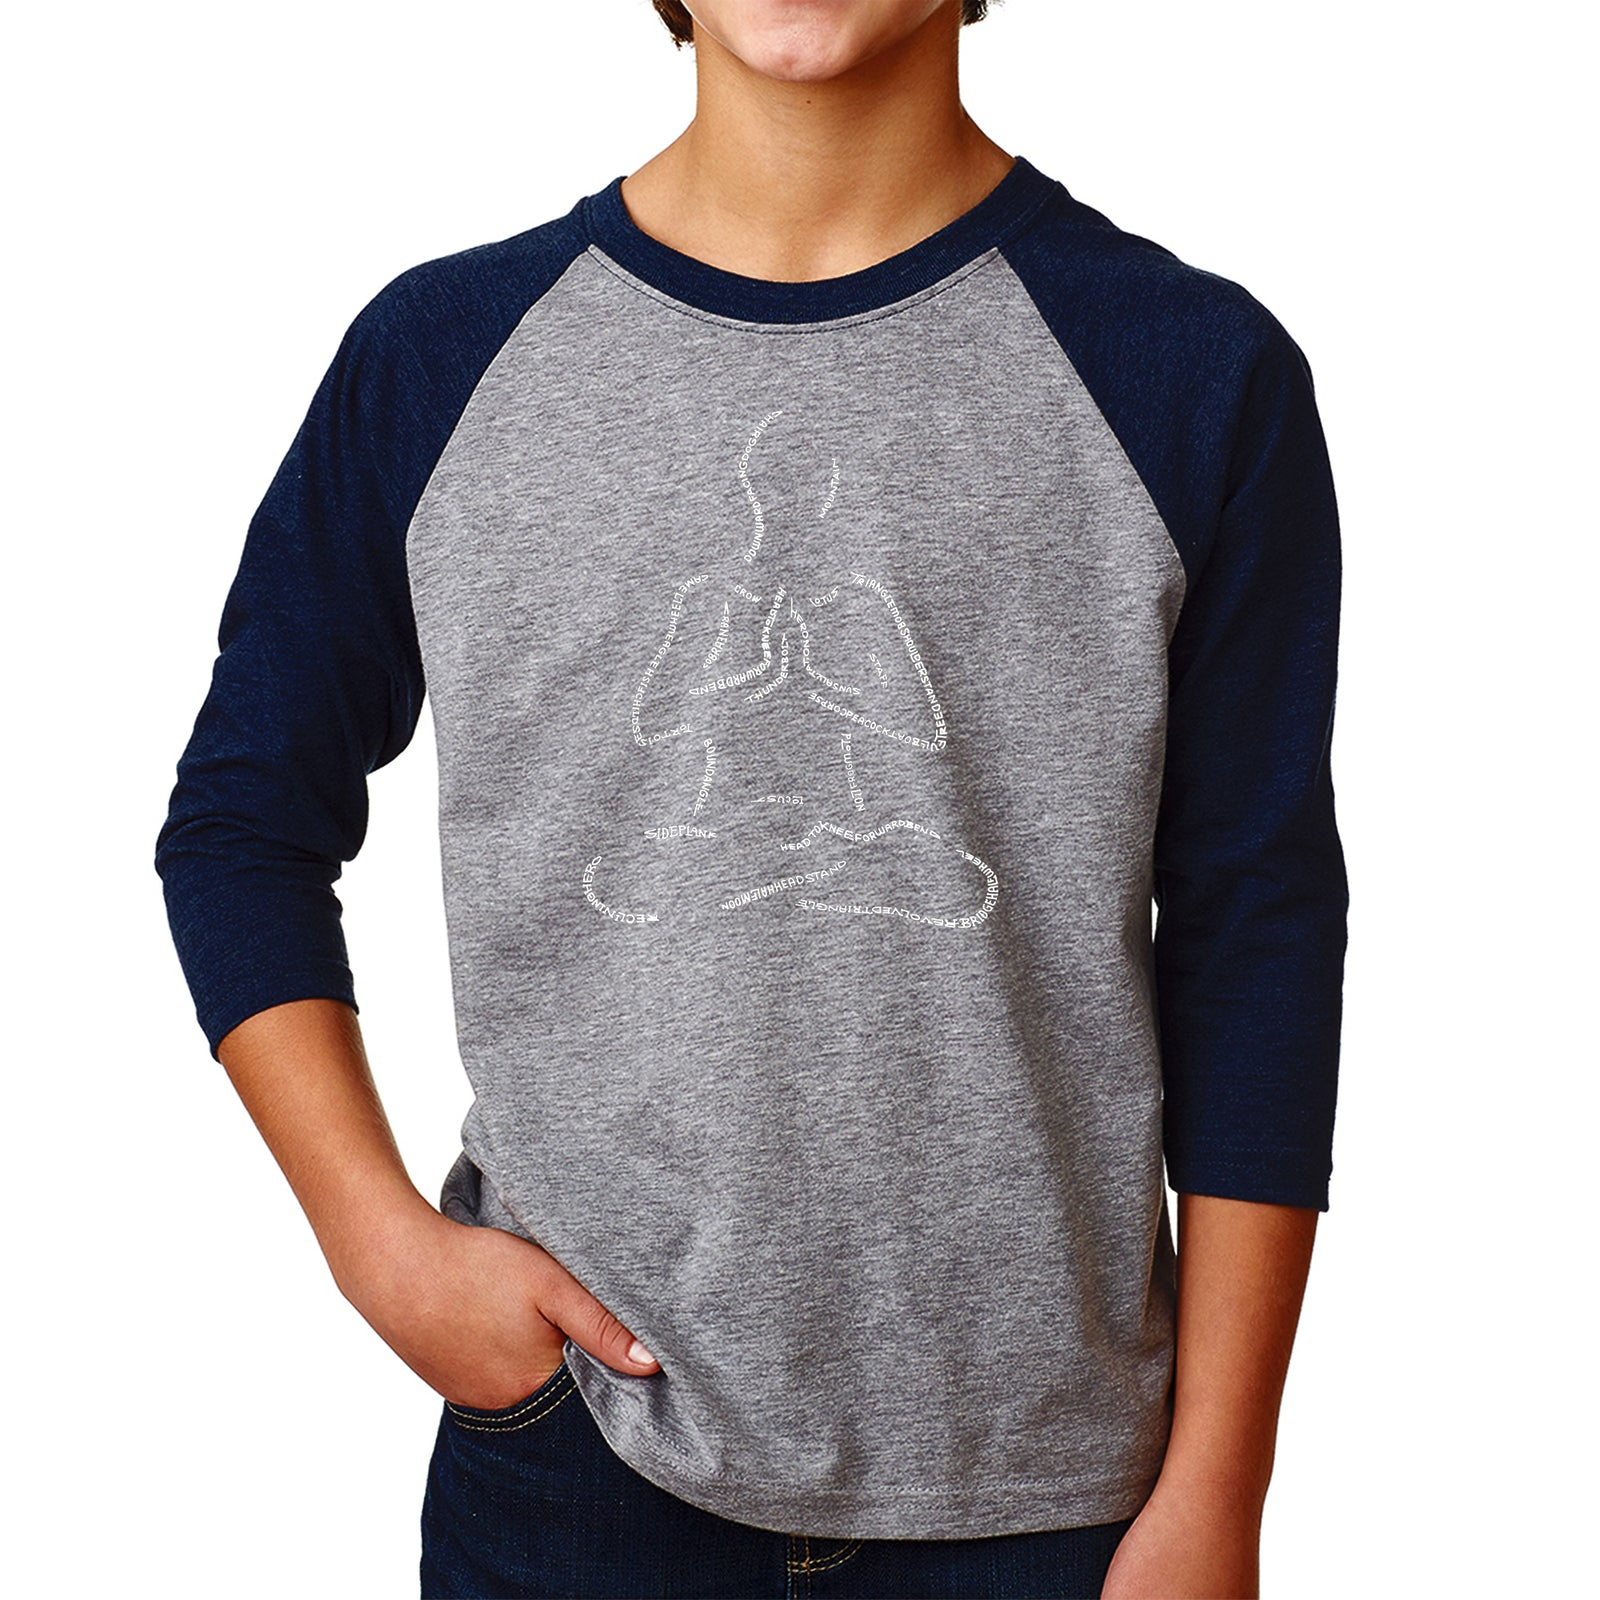 Boy's Raglan Baseball Word Art T-shirt - POPULAR YOGA POSES